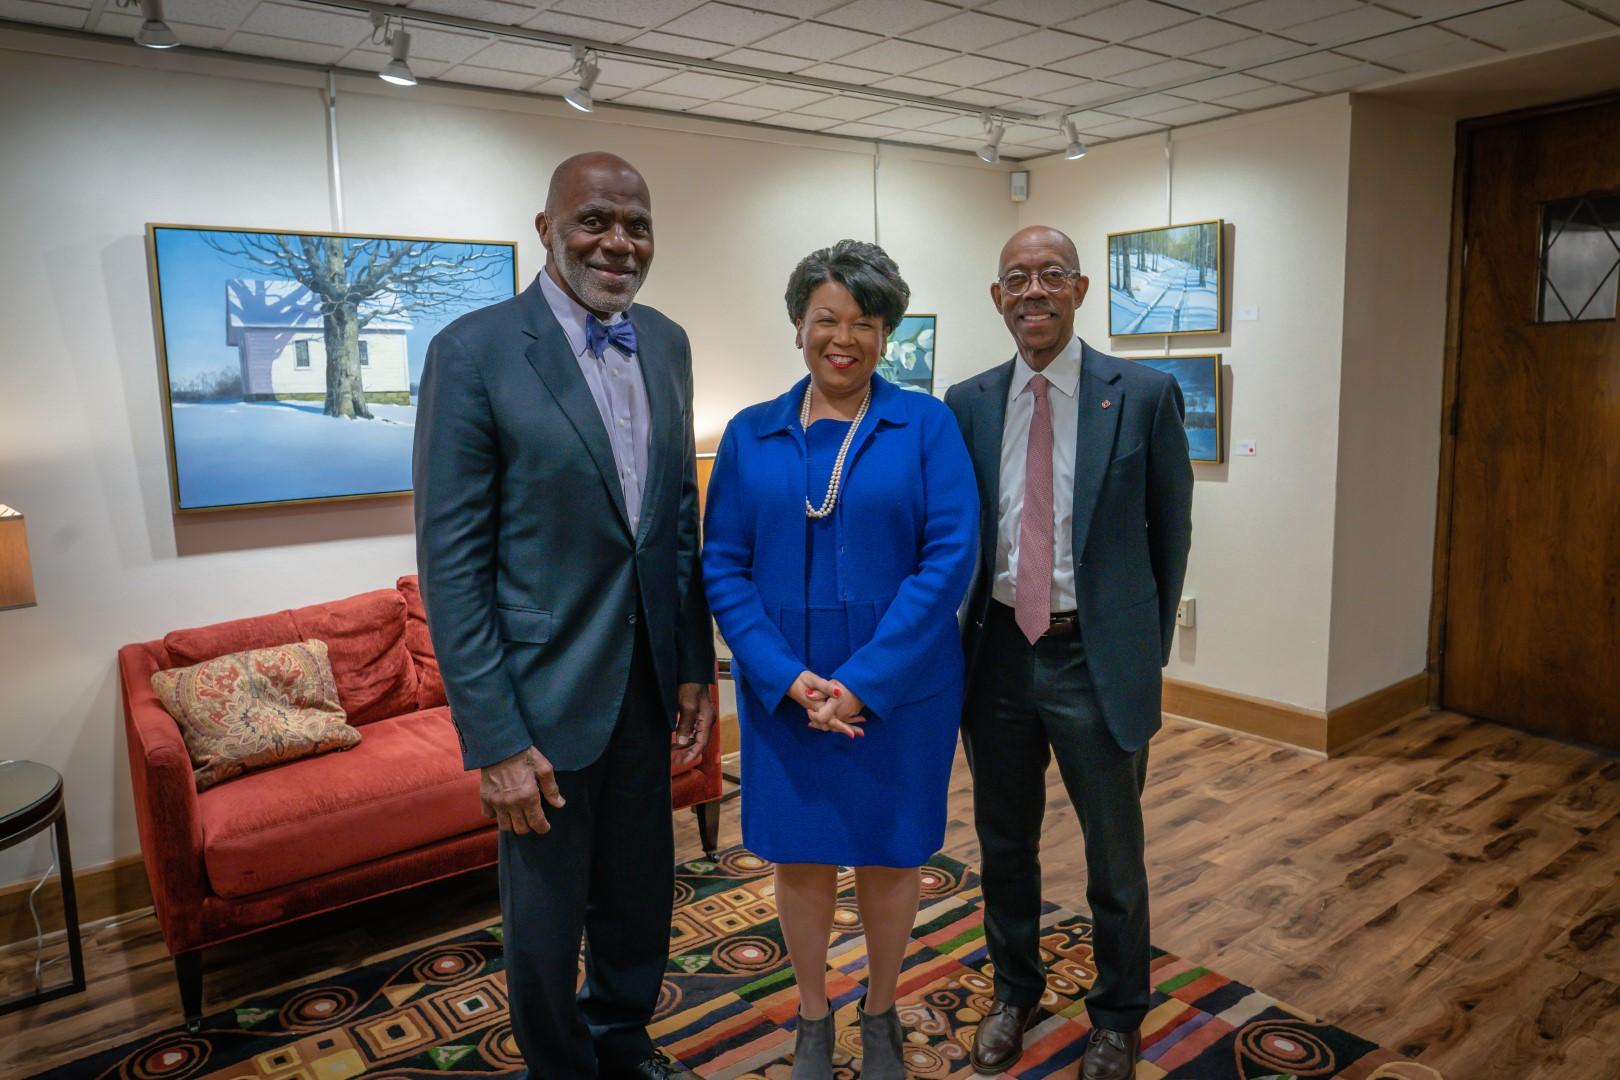 Justice Alan Page and President Drake